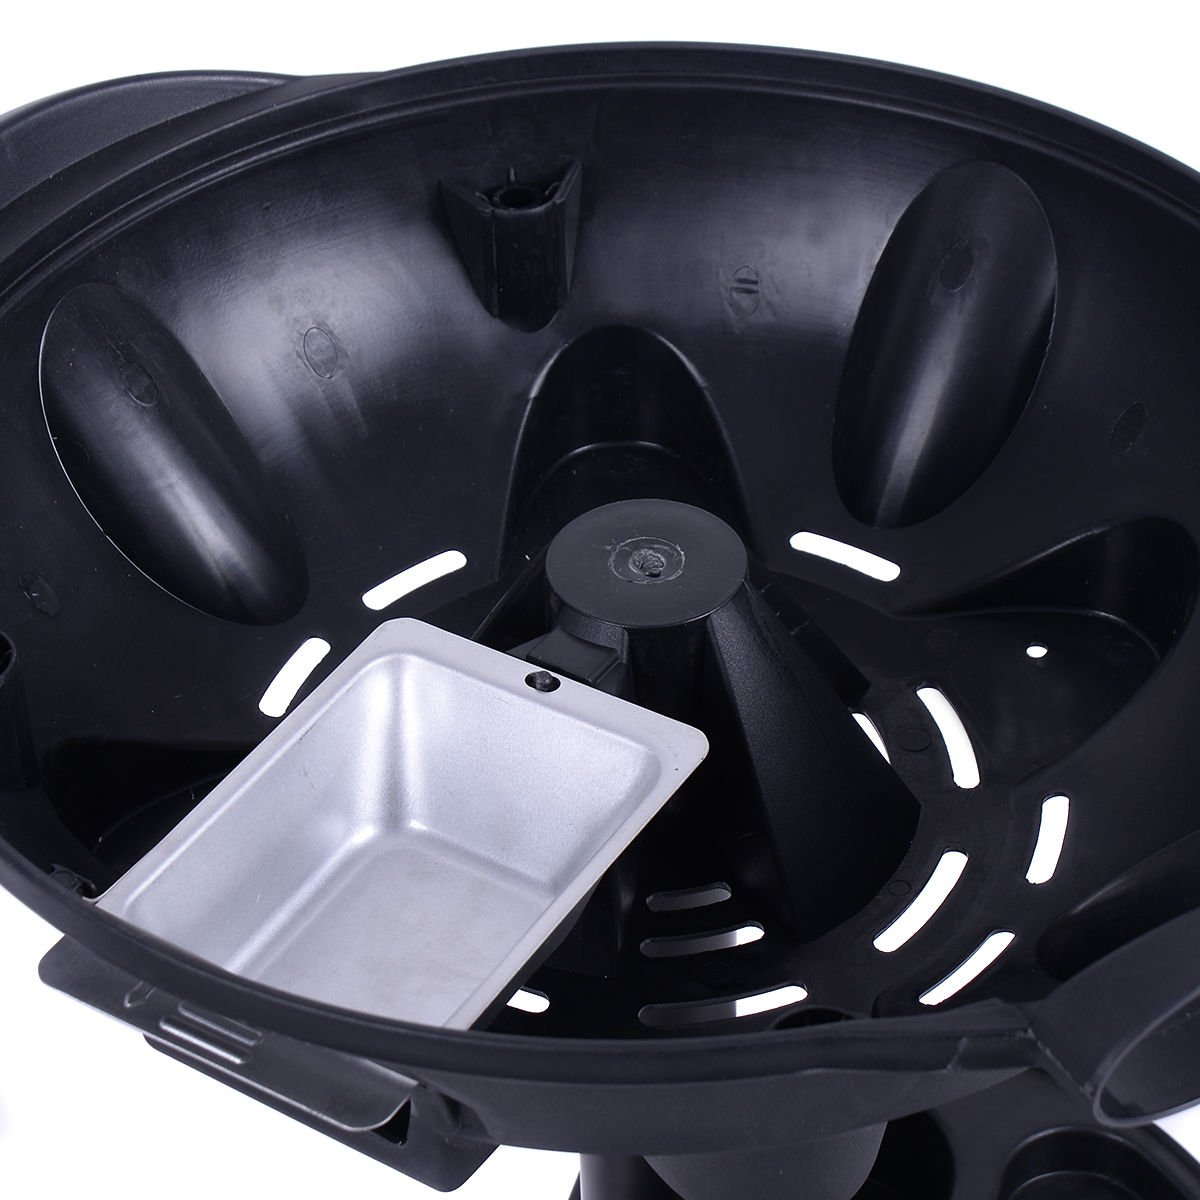 New Electric BBQ Grill 1350W Non-stick 4 Temperature Setting Outdoor Garden Camping by totoshop (Image #7)